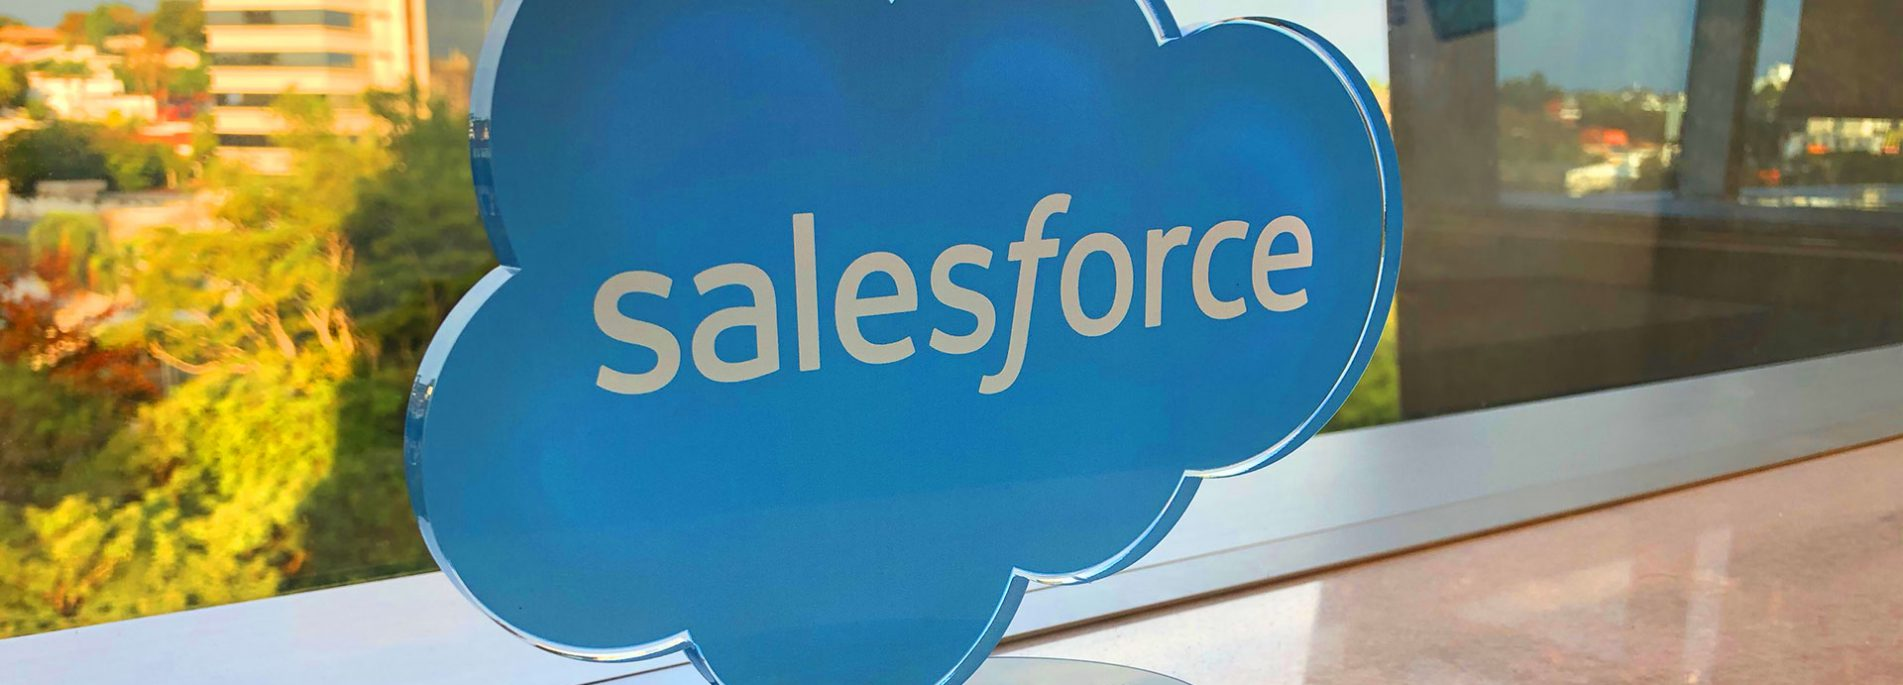 Sottelli recebe prêmio Top Advanced Certifications Growth da Salesforce